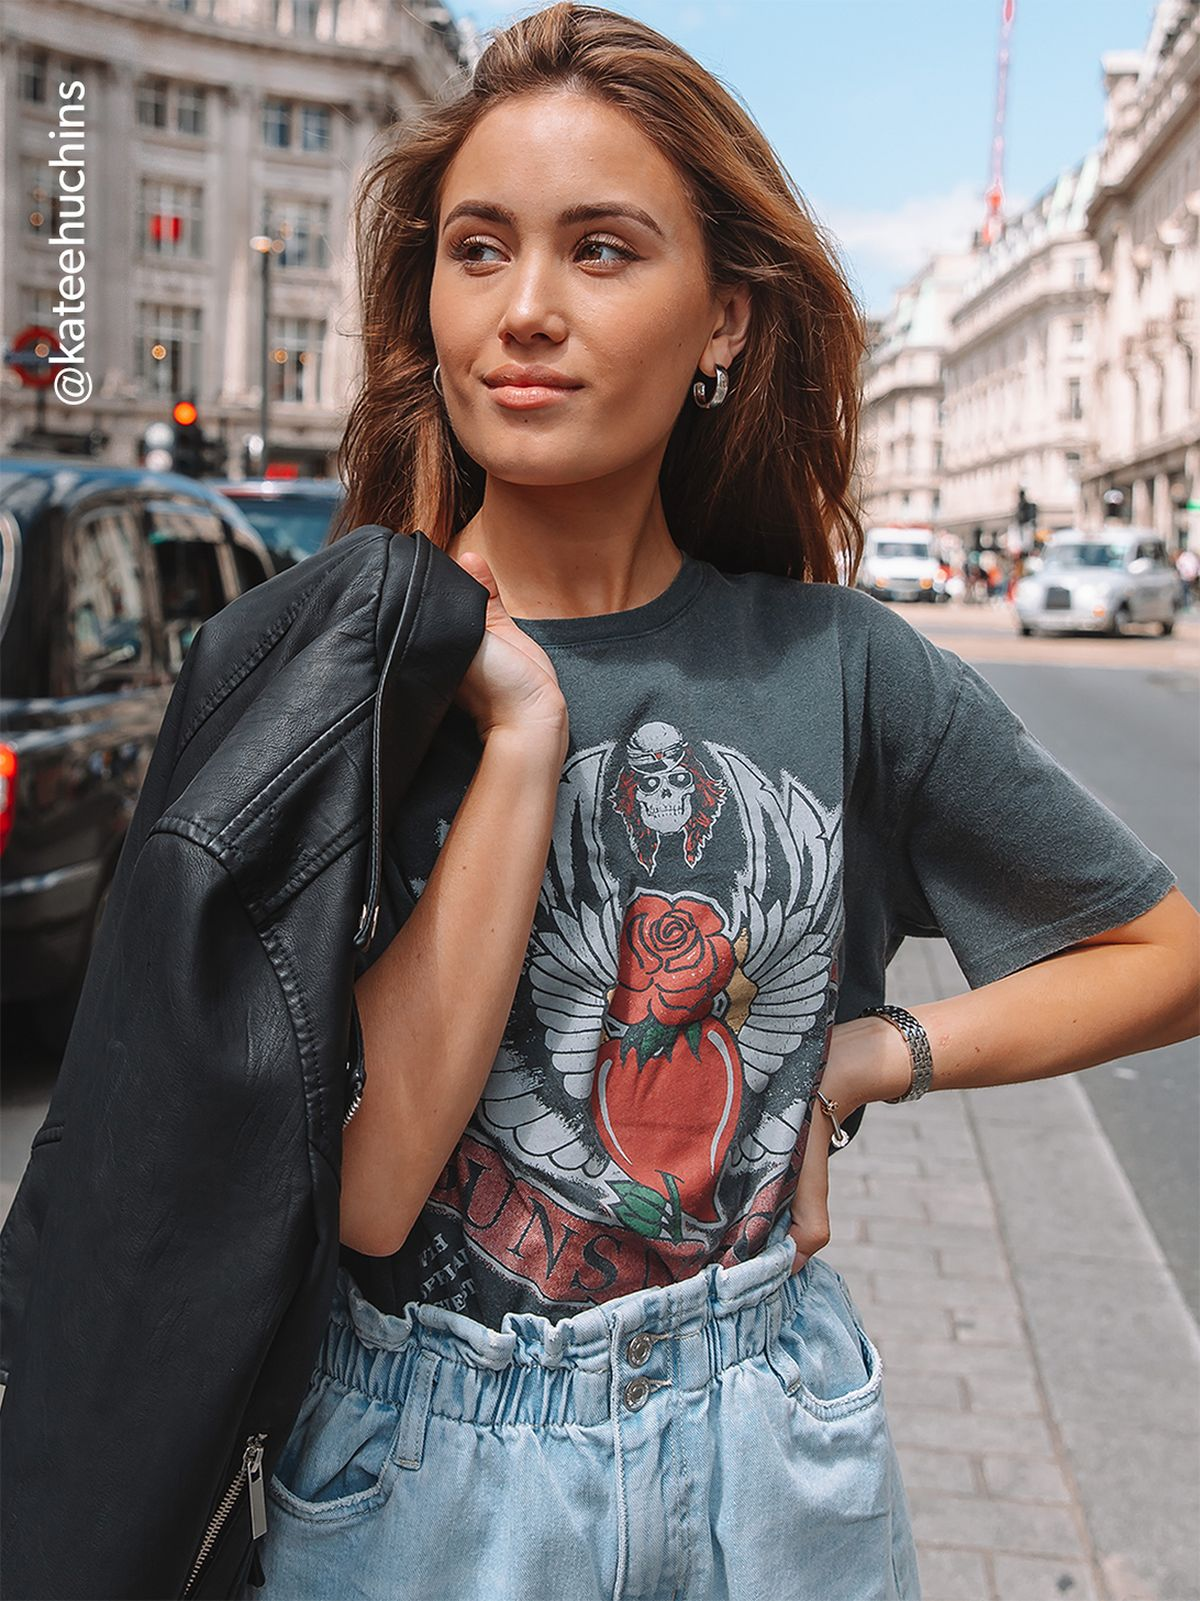 edb4ba72dd507 Influencer Kate Huchins wears a vintage style band tee with paper bag waist  shorts and a